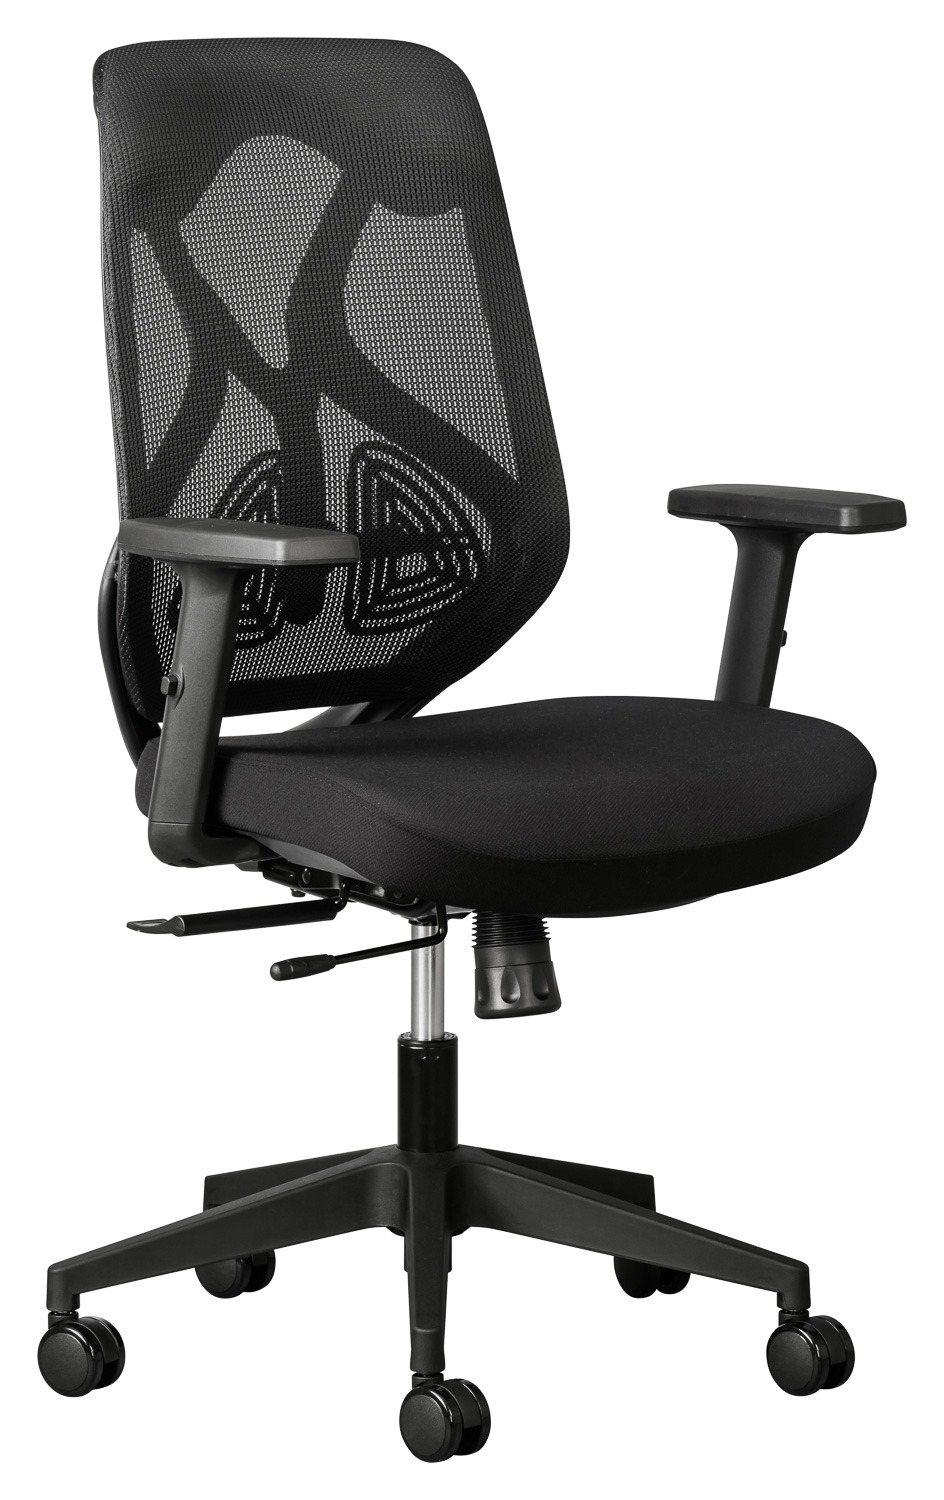 Leila Task office chair is ideal for home office